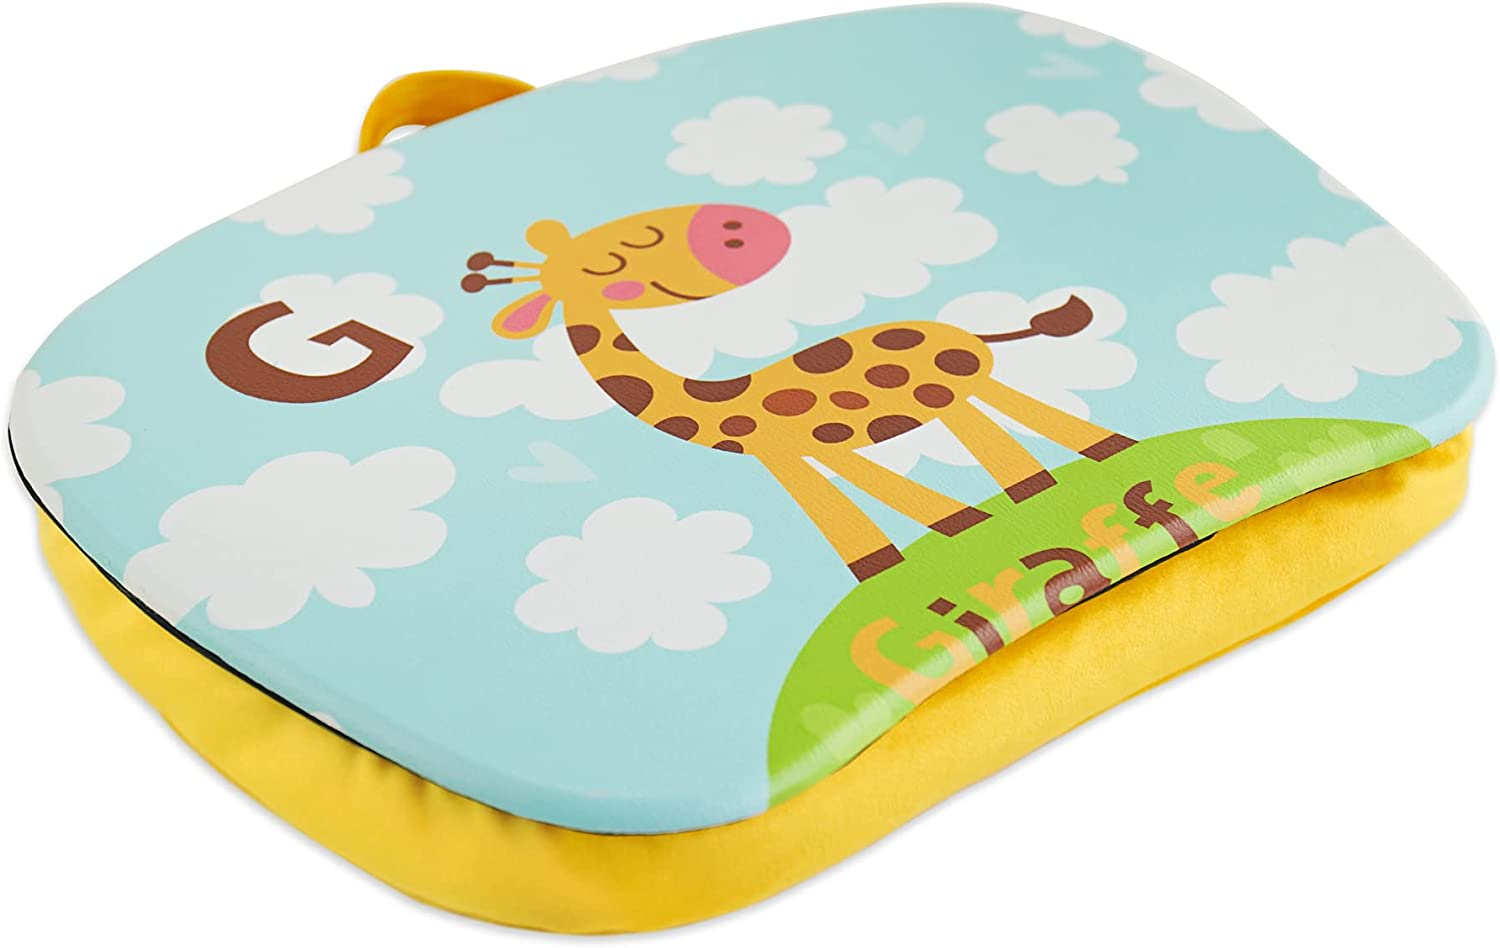 QIELIZI Pets Lap Desk for Kids - and Lapd Mail order cheap Students Adults New York Mall